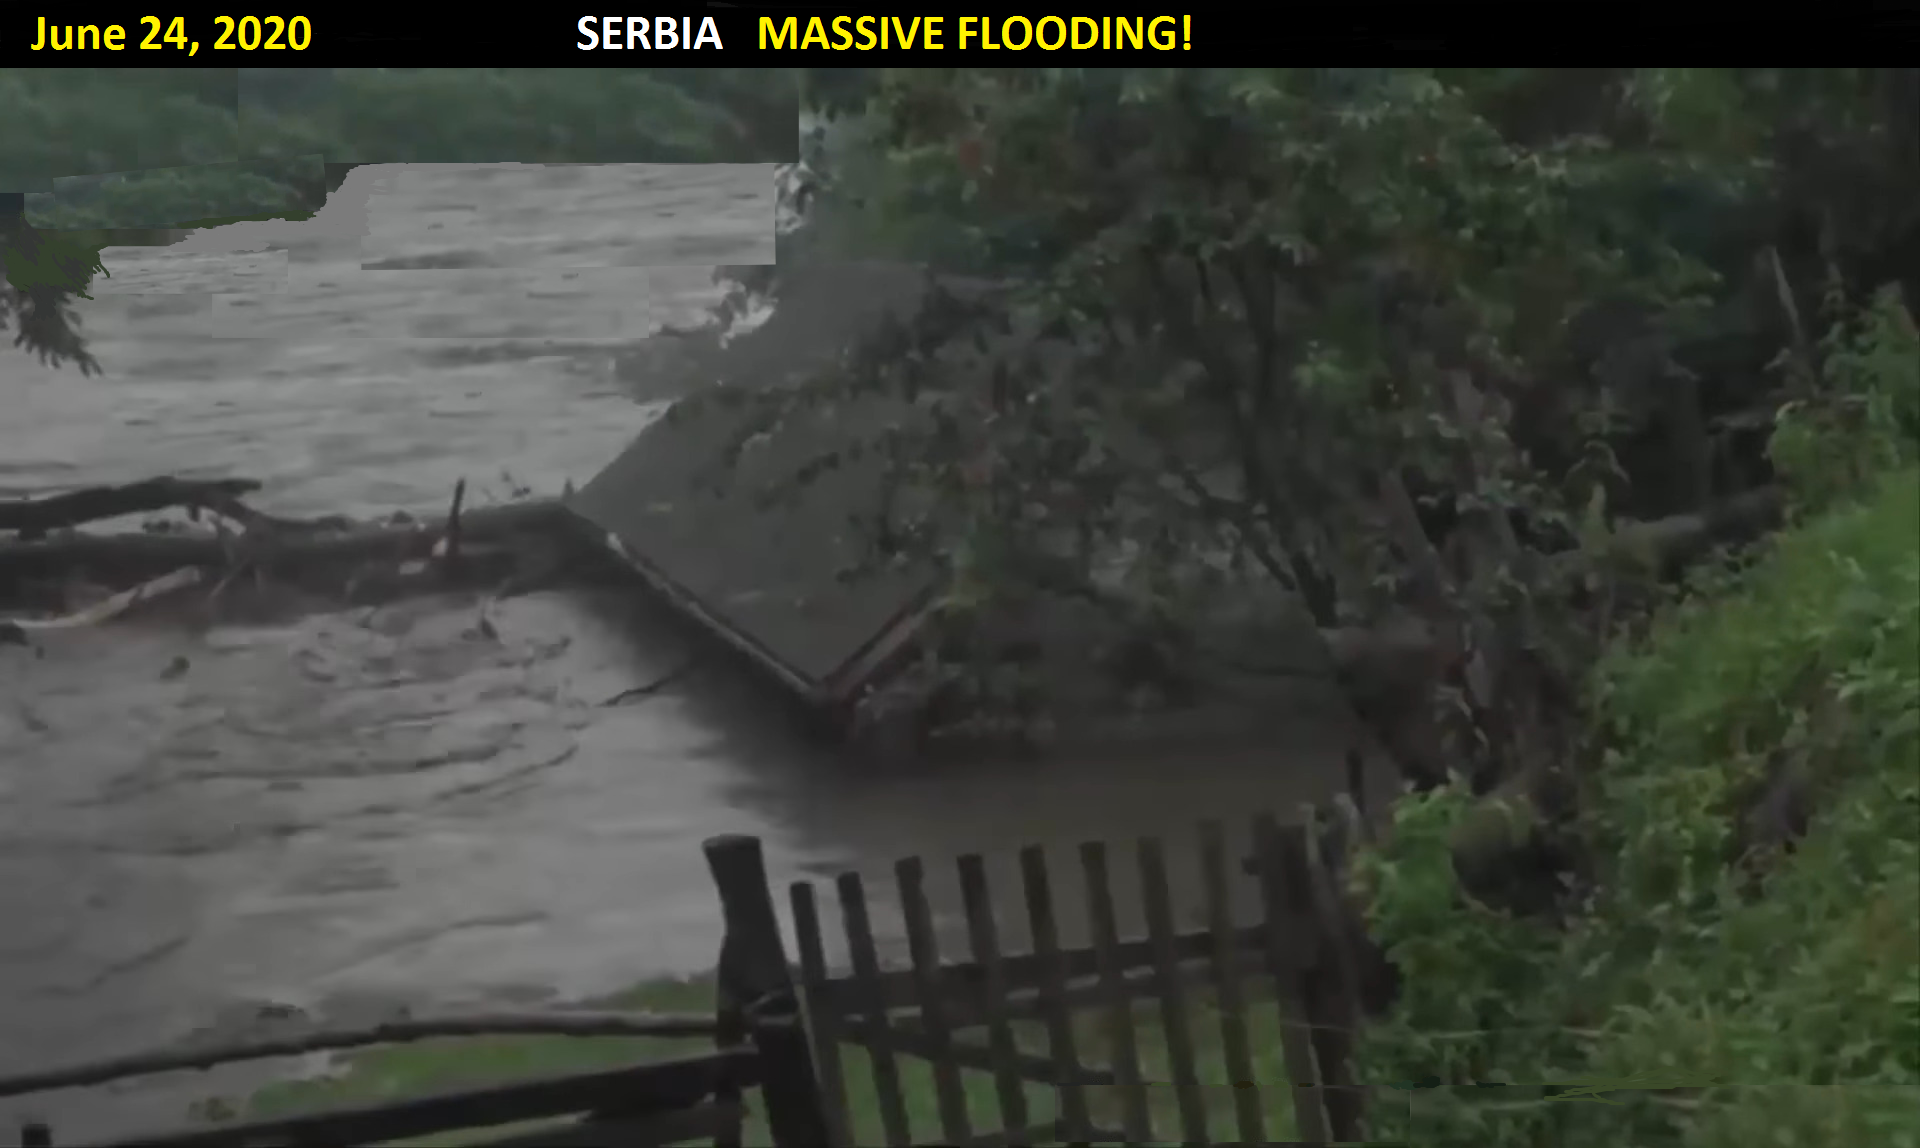 Massive Serbia Flooding2